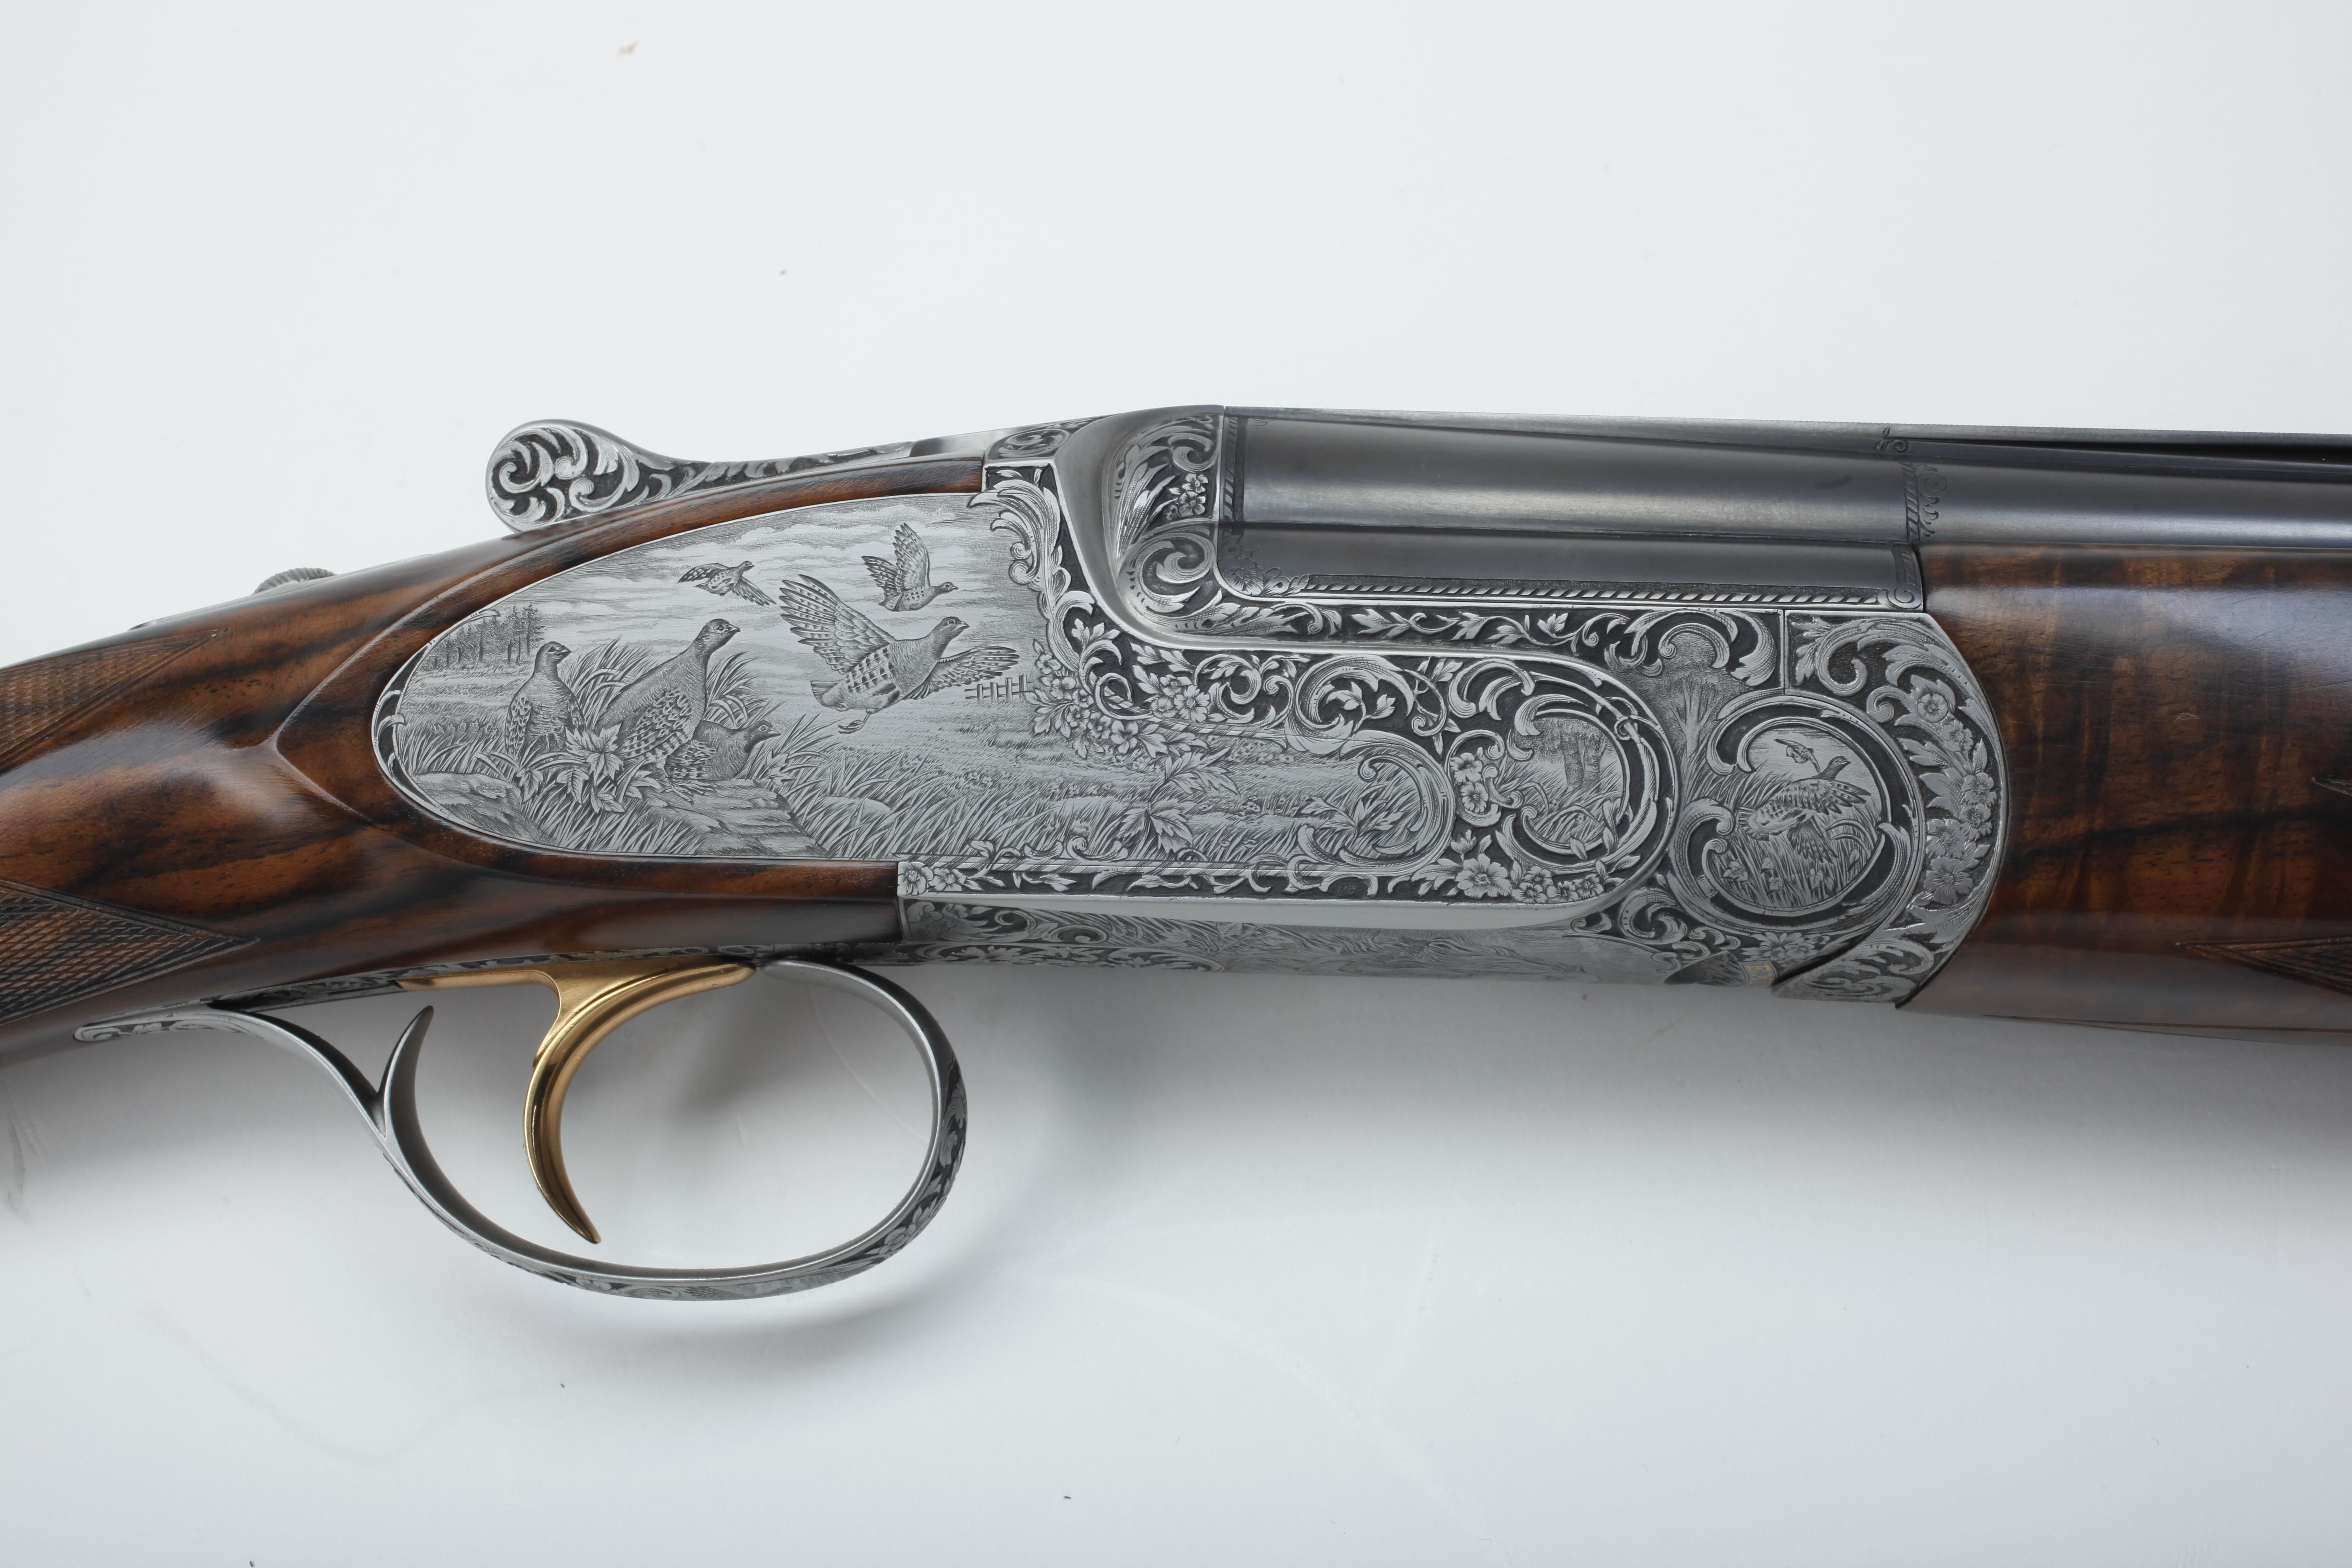 Perazzi 20 ga. Side-by-side Shotgun